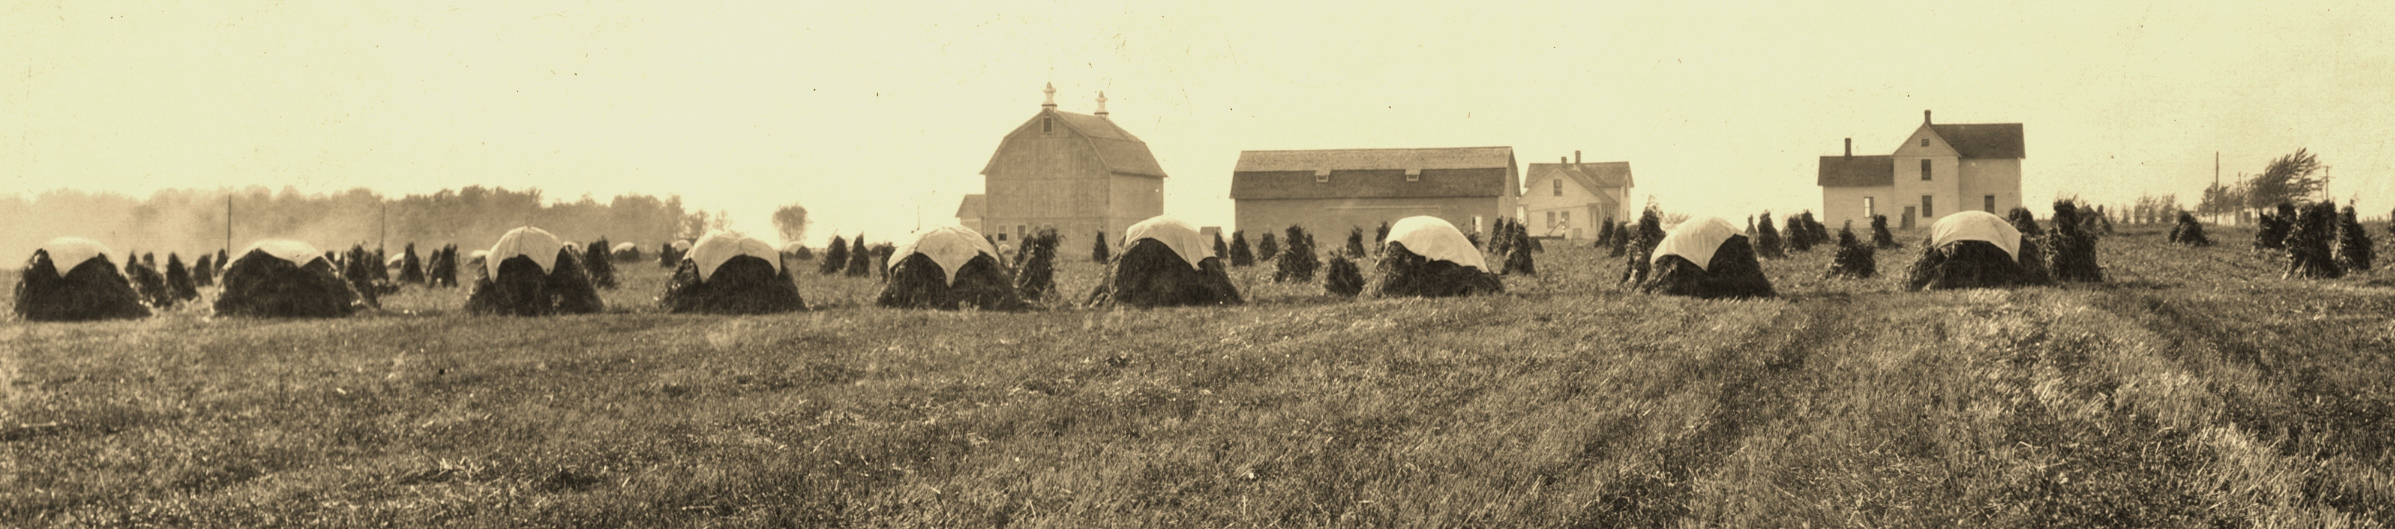 Hay stacks at the station in early 1900s